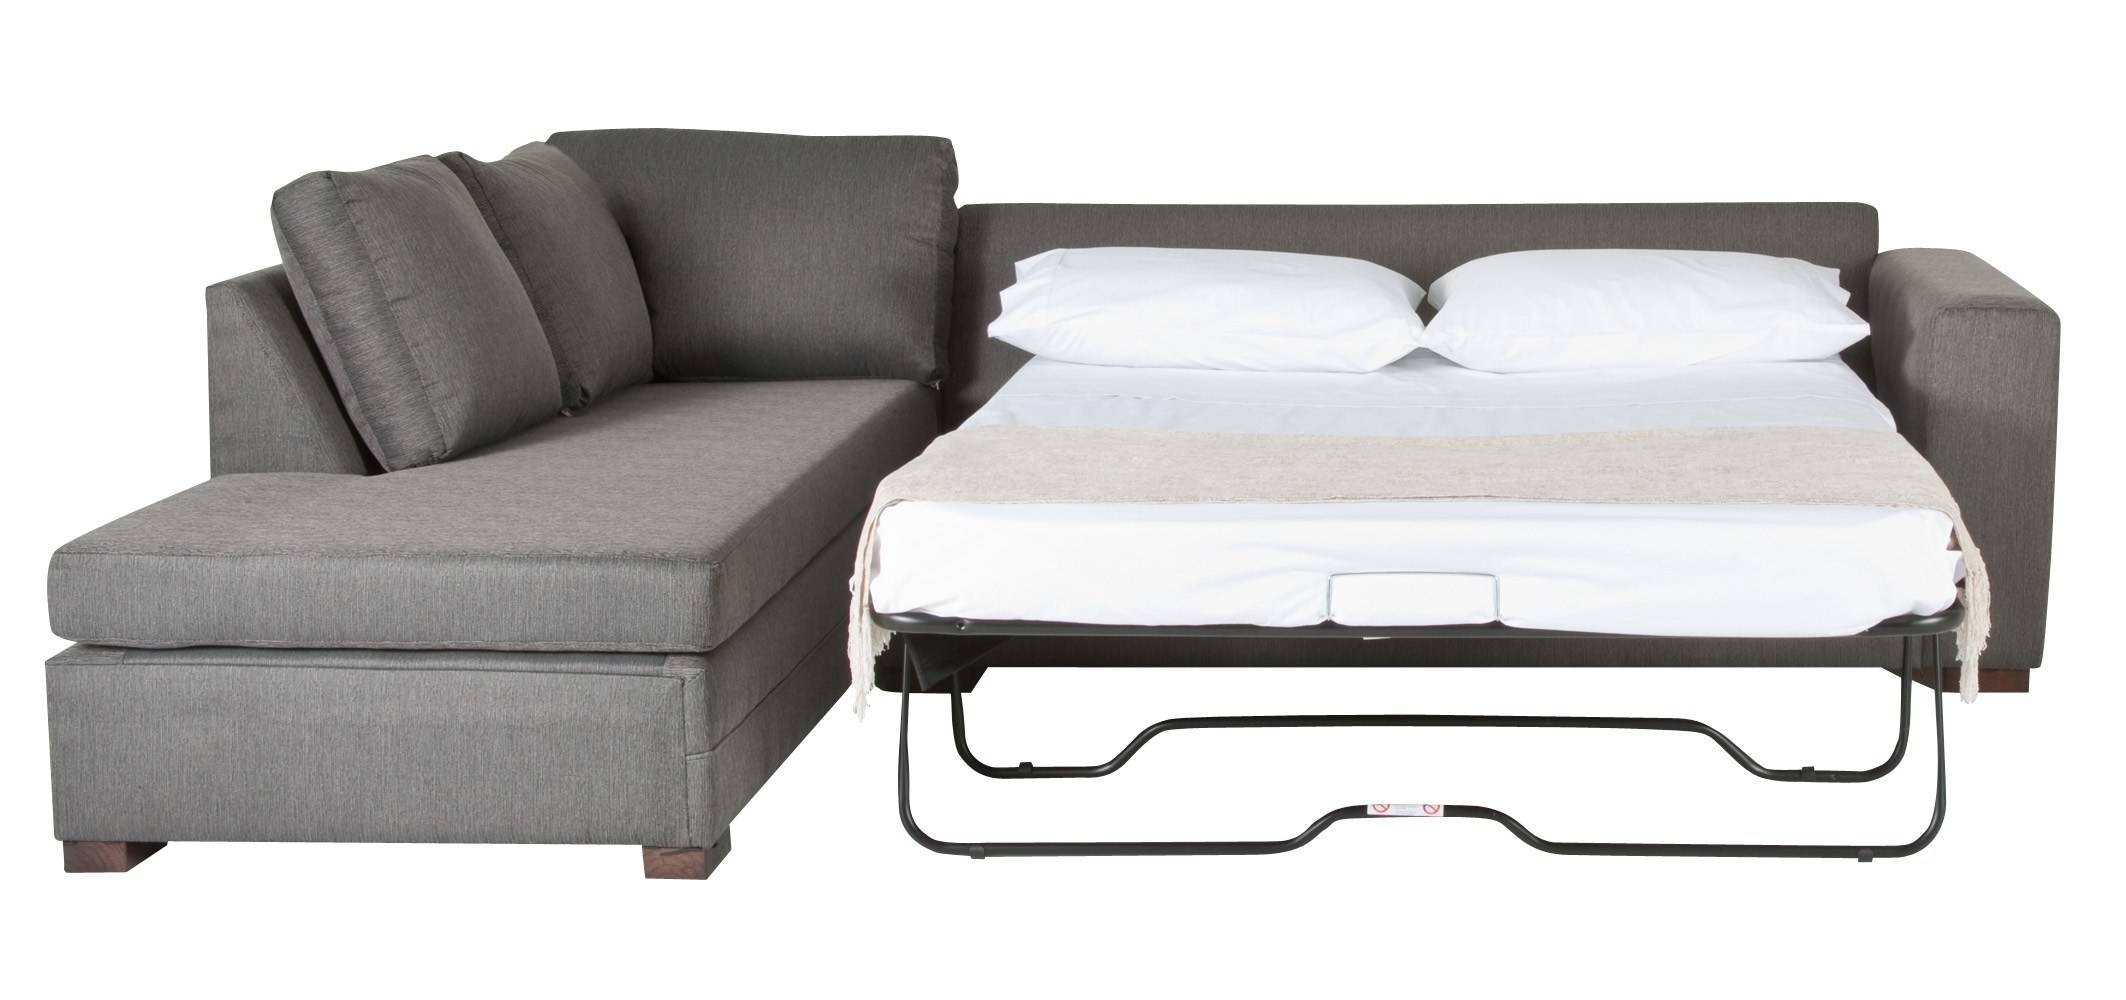 The Most Popular Fold Out Sectional Sleeper Sofa 39 In Durable with regard to Durable Sectional Sofa (Image 28 of 30)